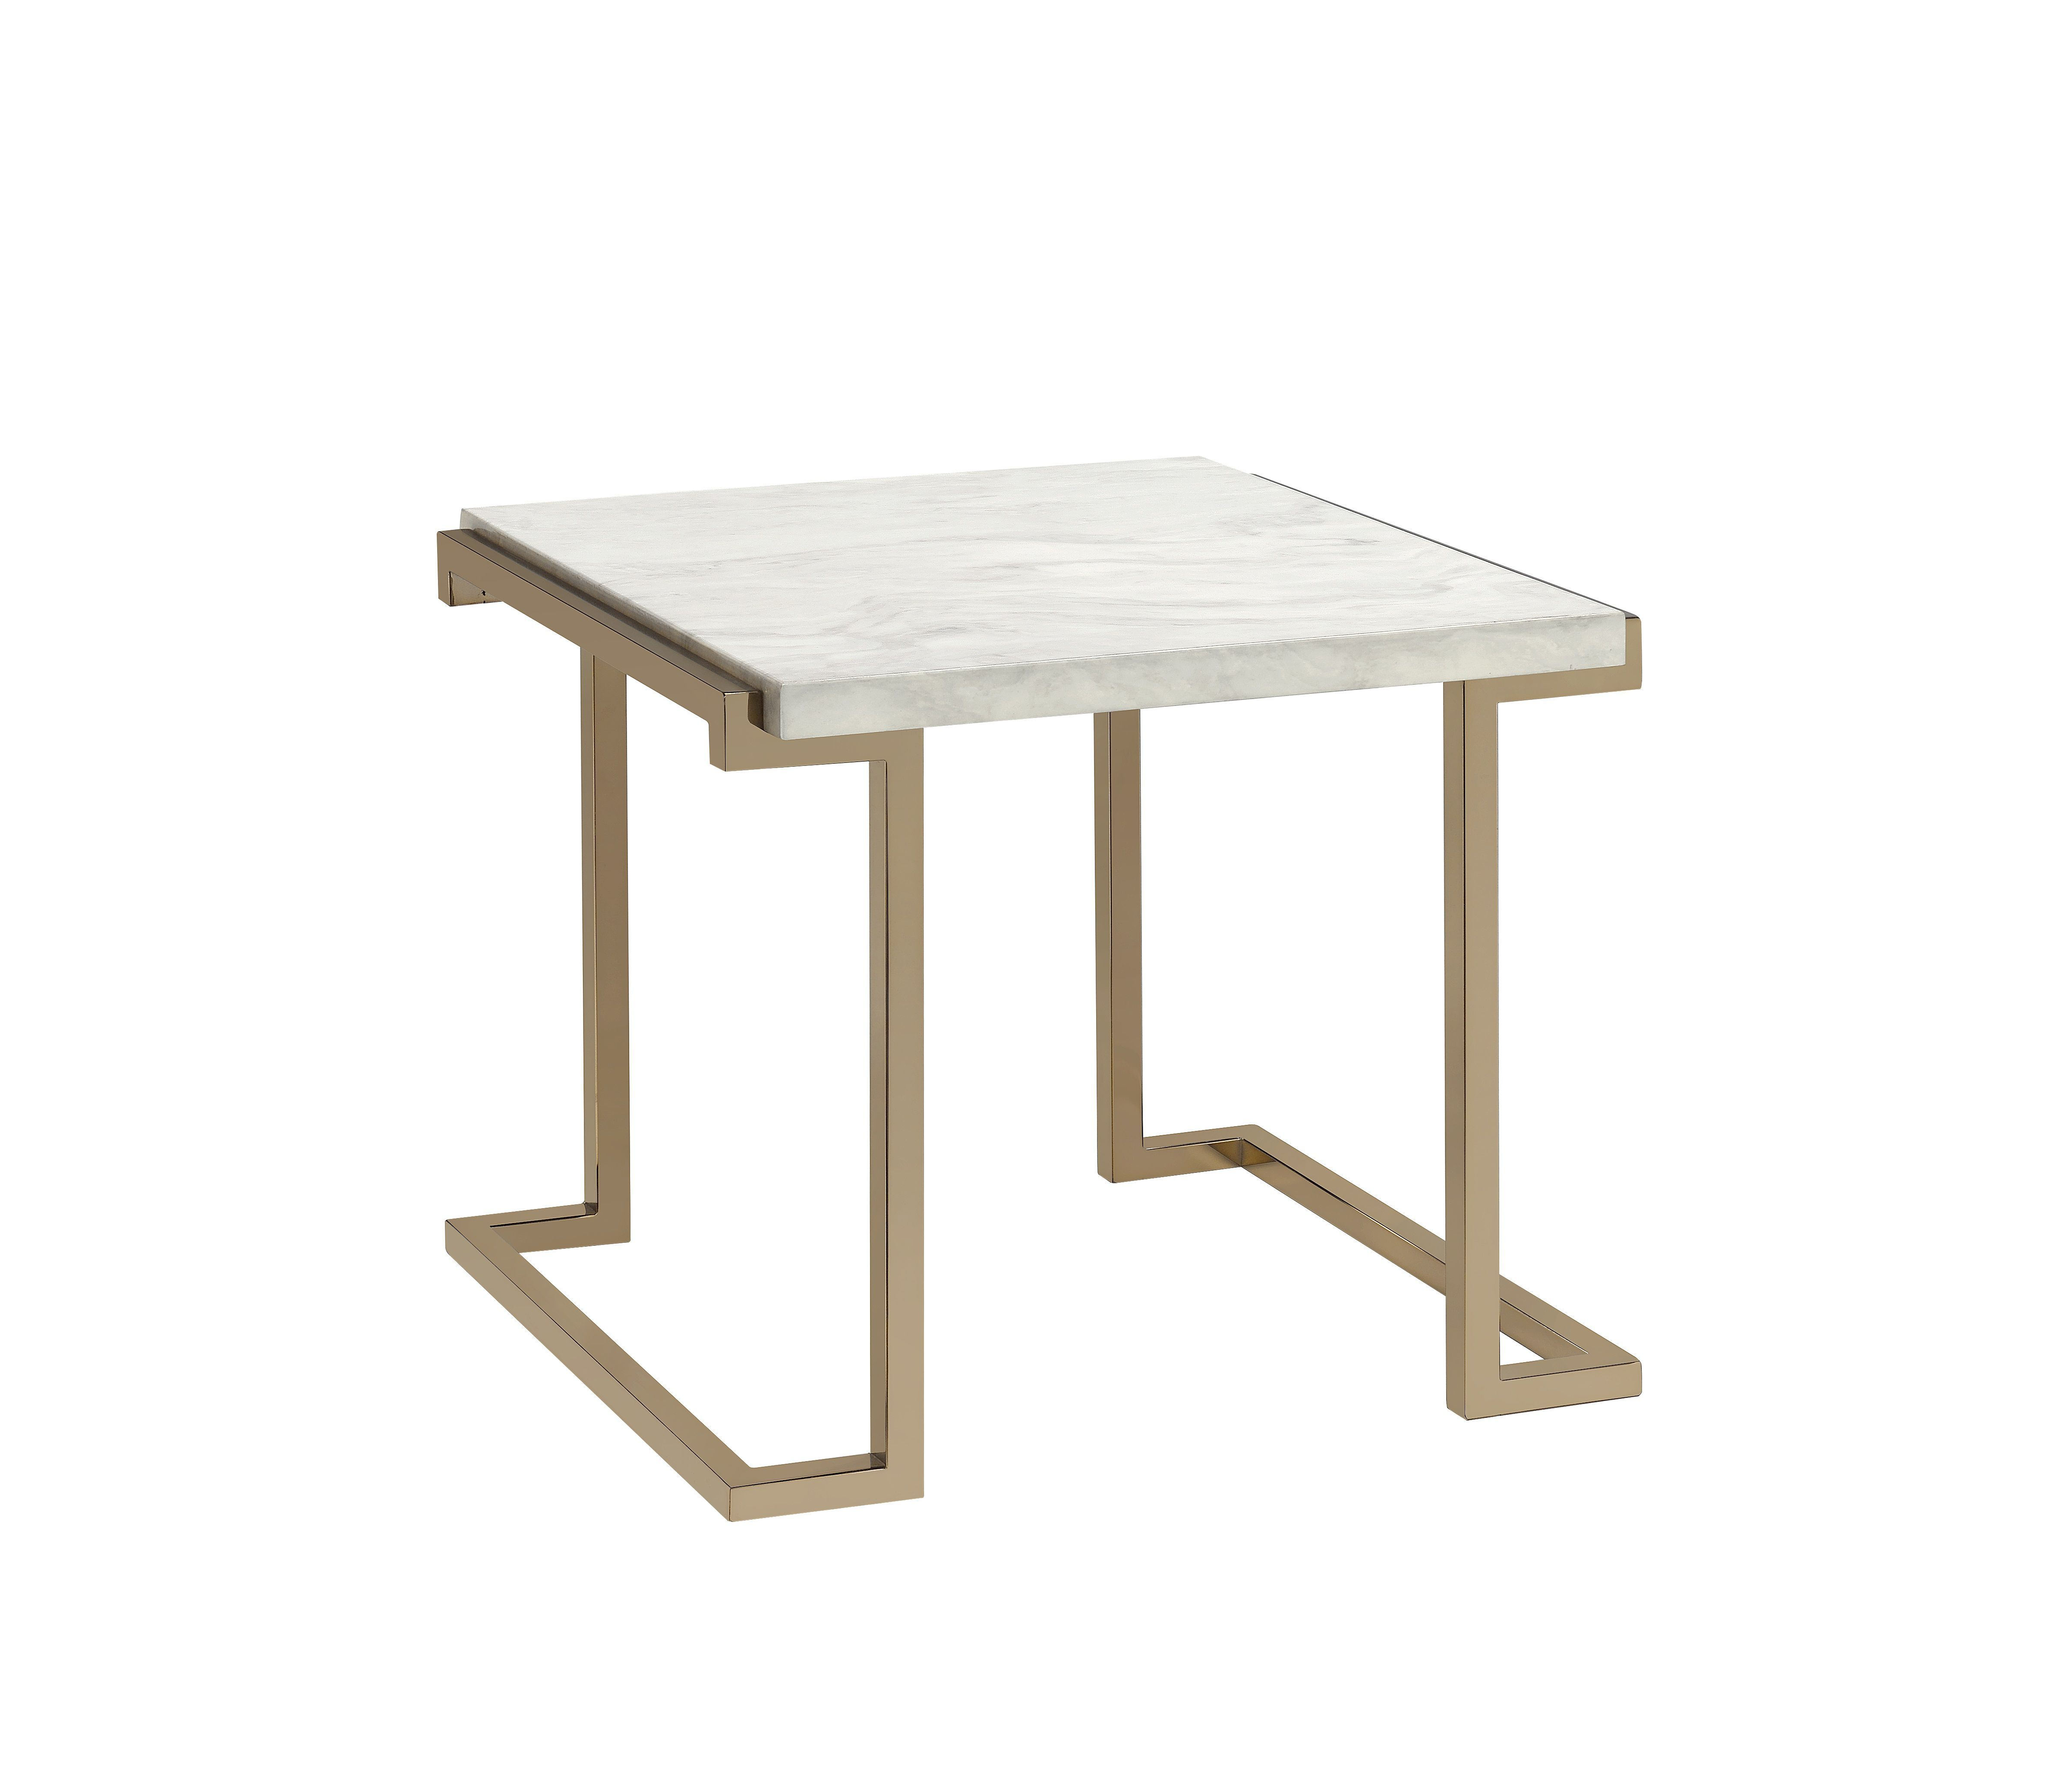 Boice Ii End Table Faux Marble Champagne Gold Marble Top End Tables Acme Furniture Furniture